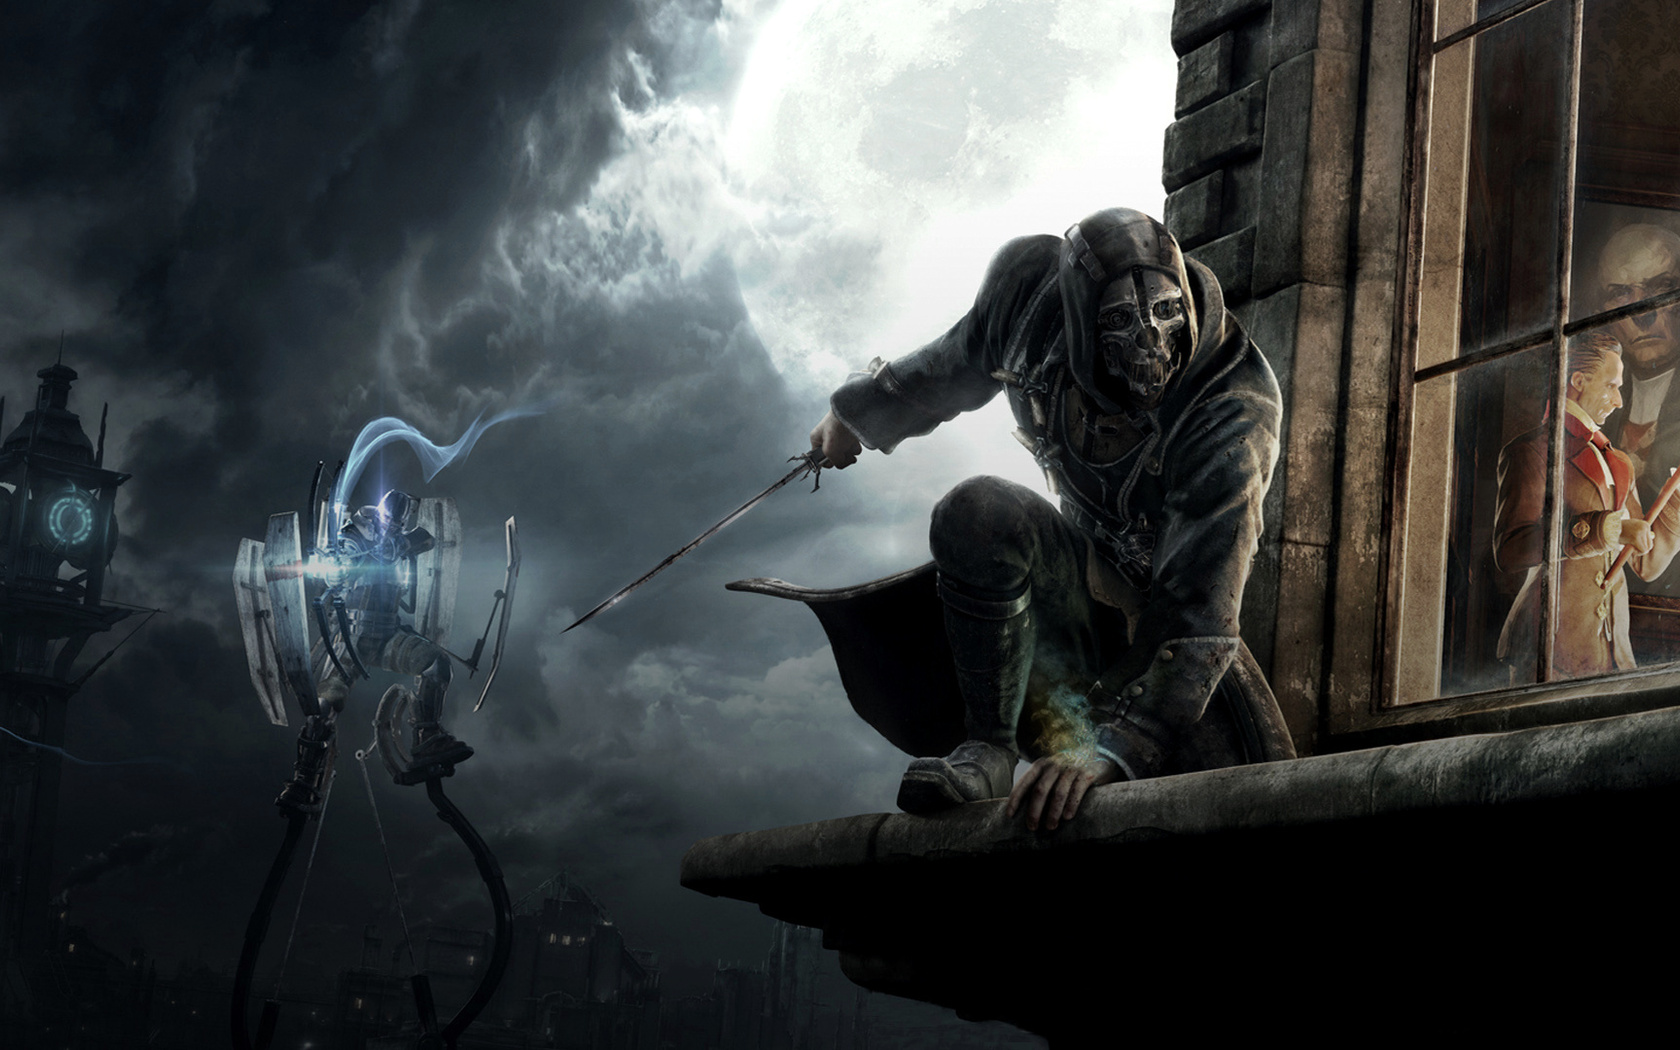 http://vignette4.wikia.nocookie.net/dishonoredvideogame/images/c/cd/Dishonored_(Corvo).jpg/revision/latest?cb=20120811222012